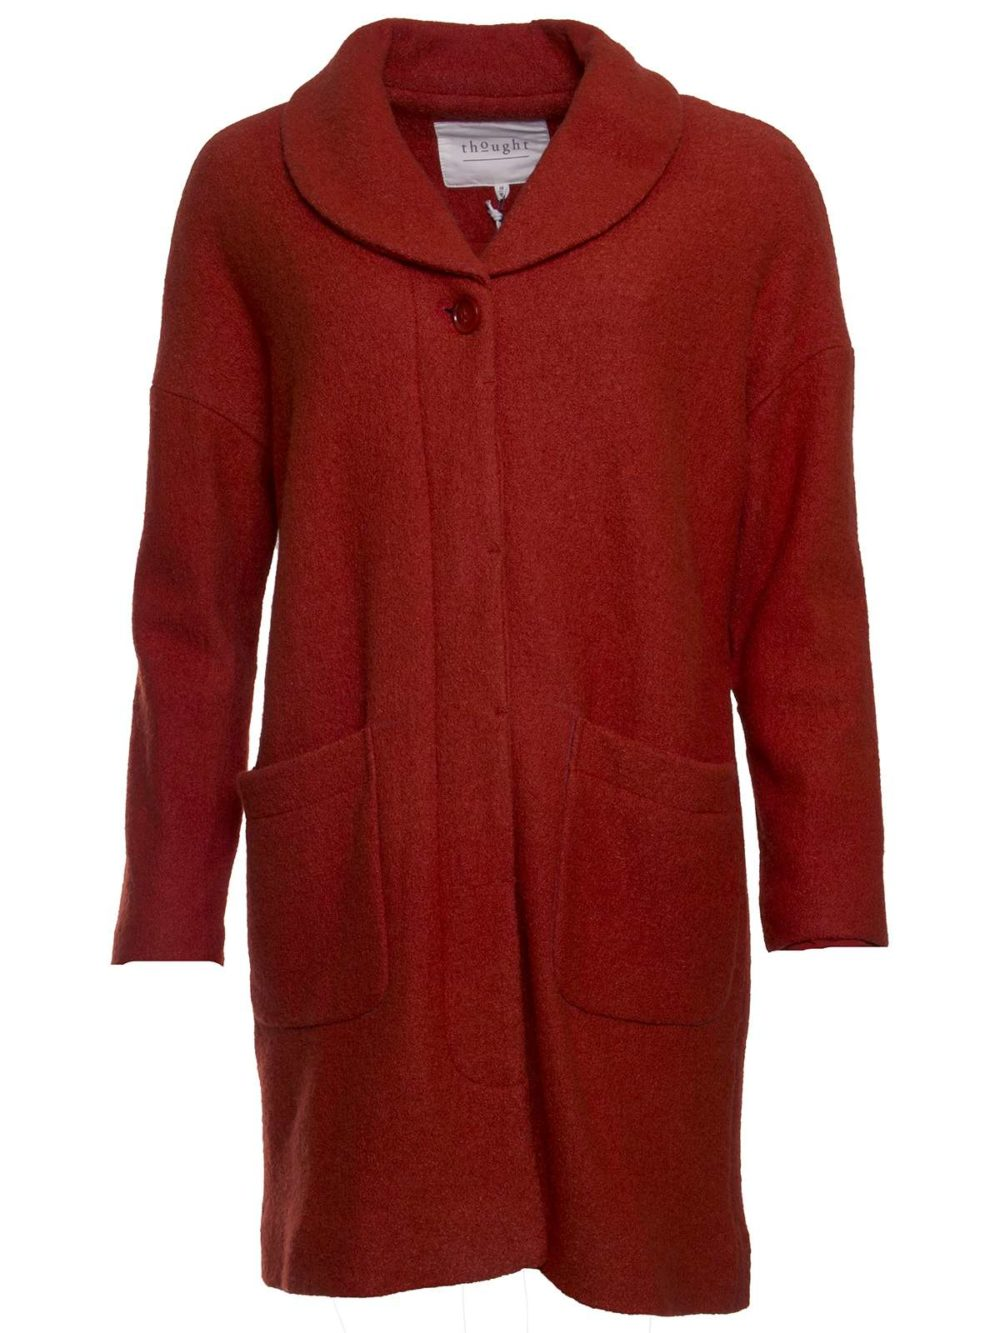 Gwendolyn Coat Thought Clothing Katie Kerr Women's Clothing